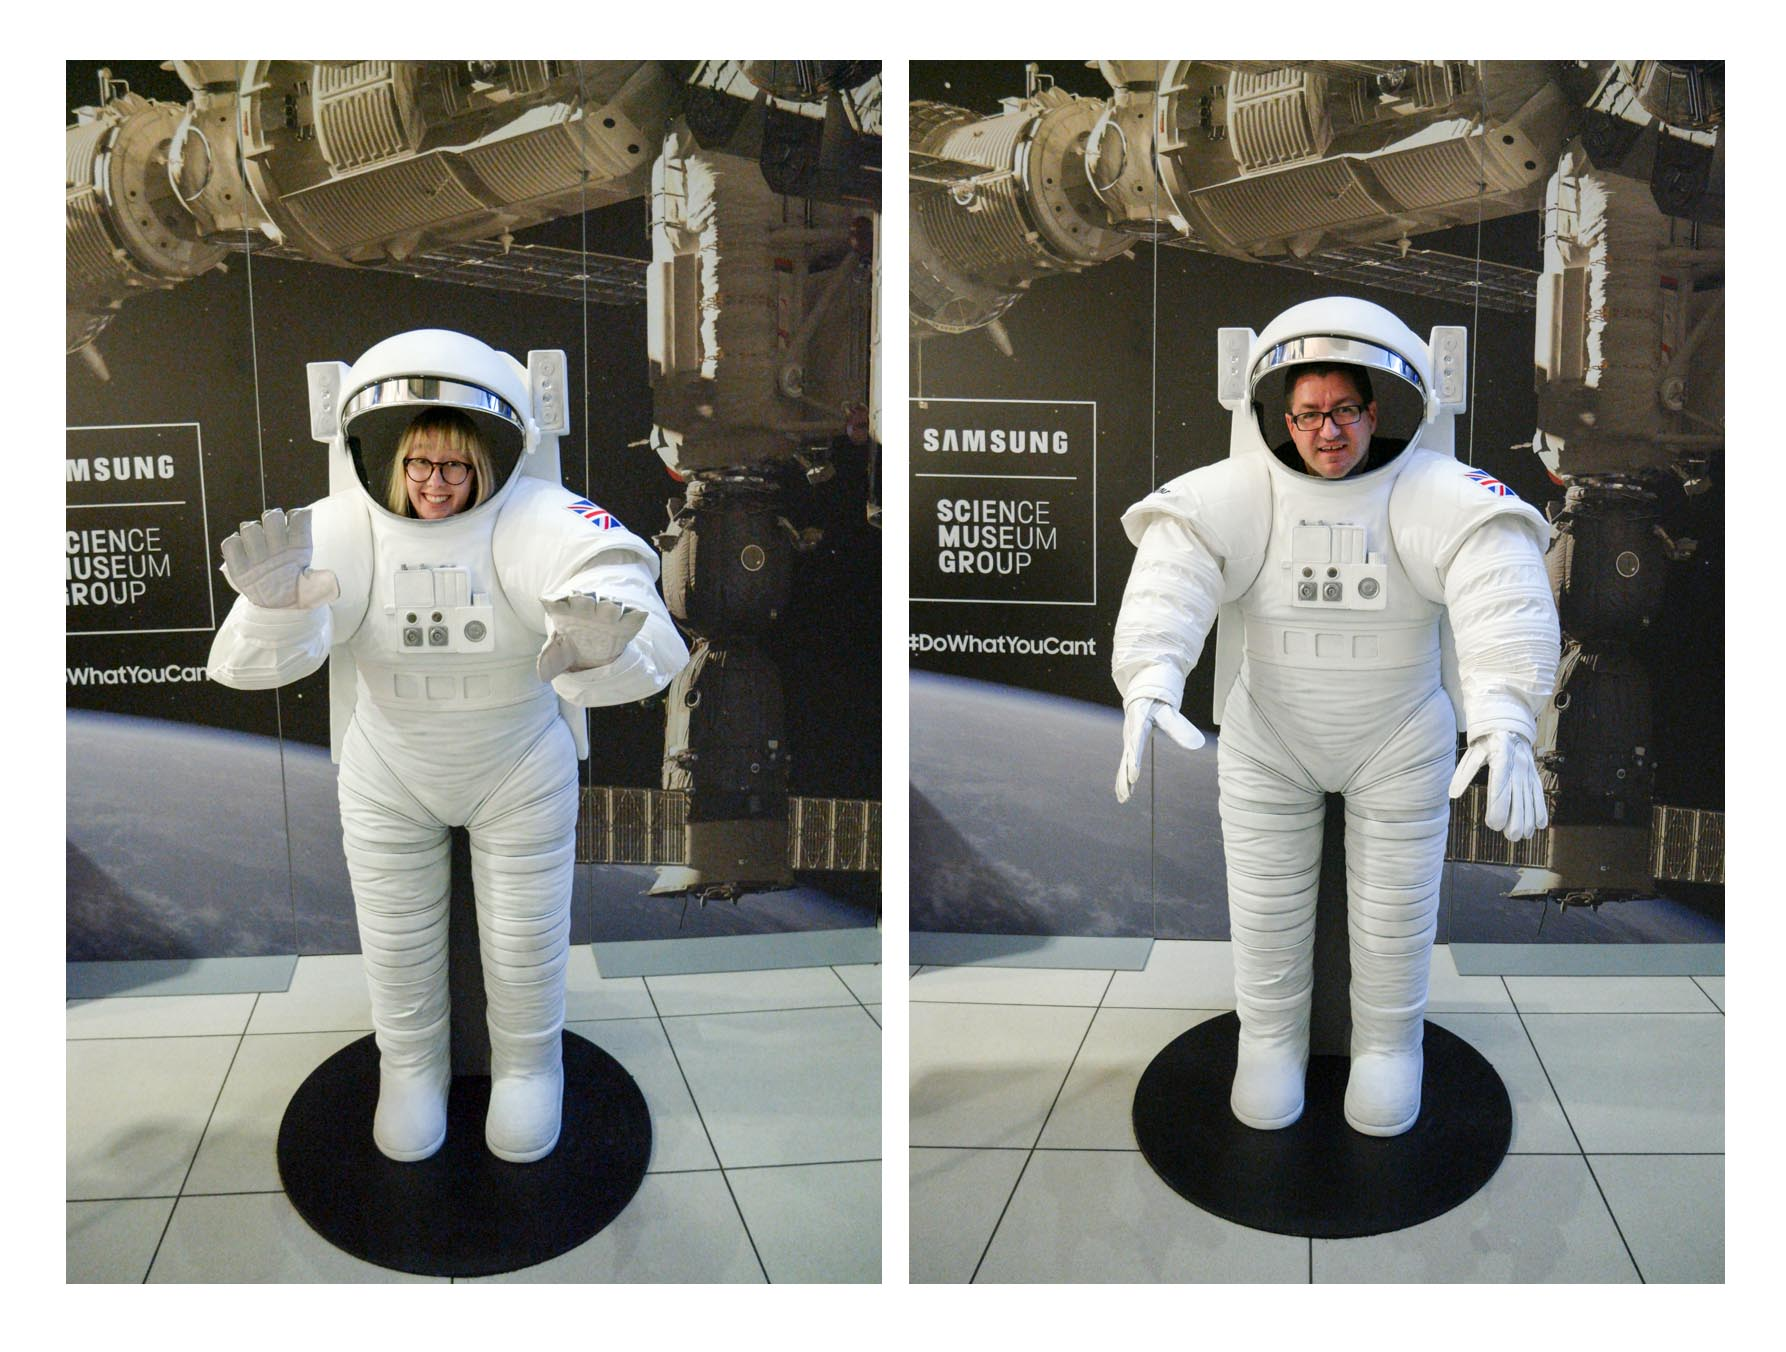 Space suits at the science and media museum bradford